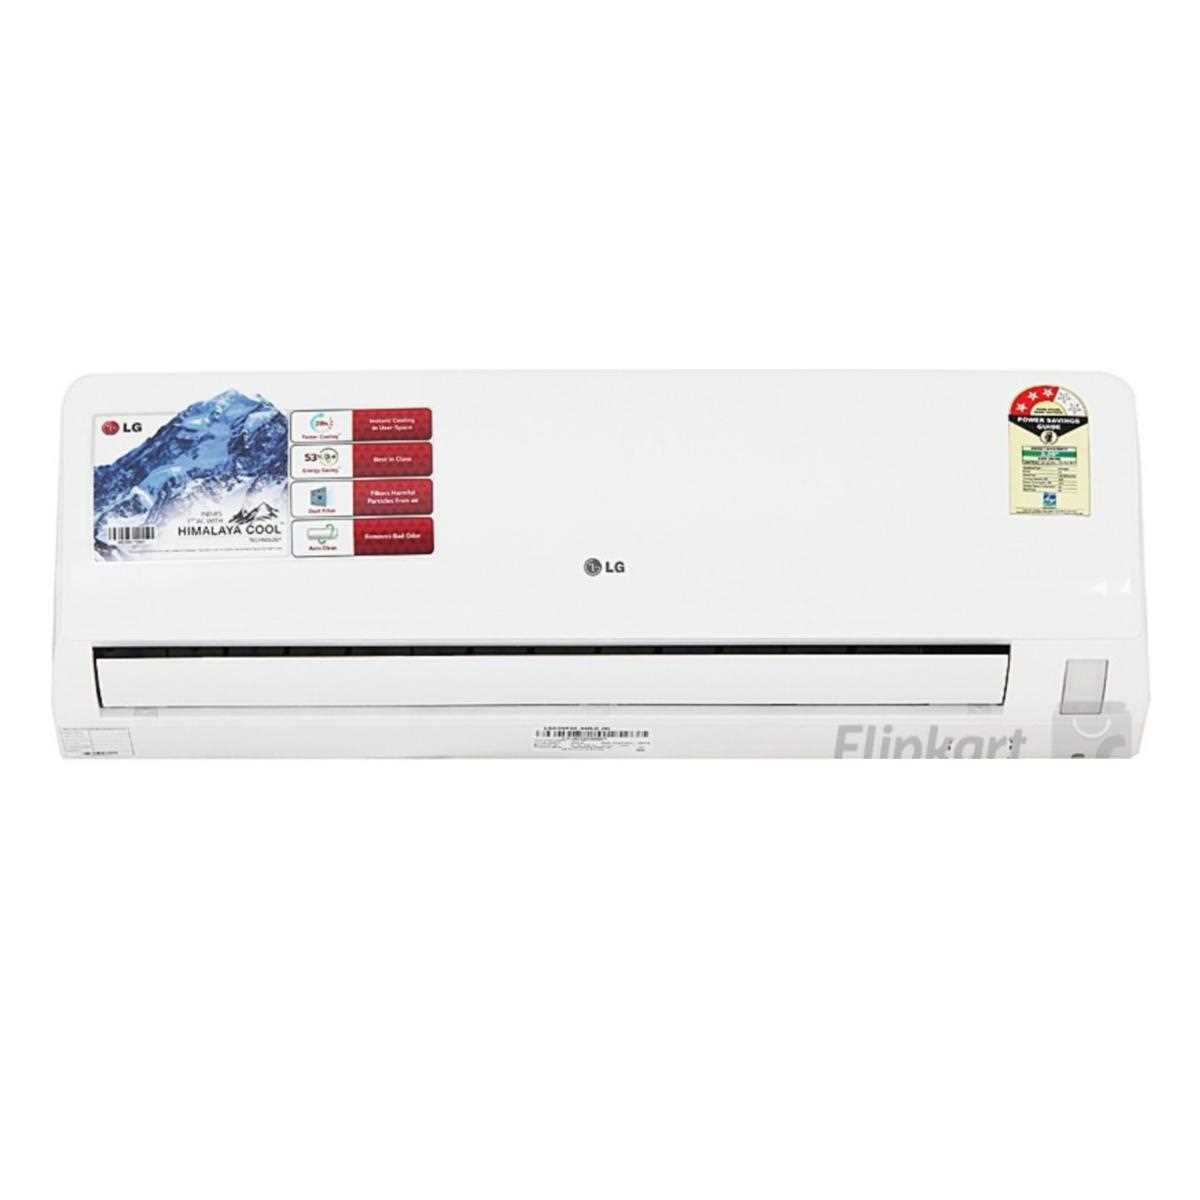 Lg air conditioner price list 2017 in india lg split for 0 8 ton window ac price